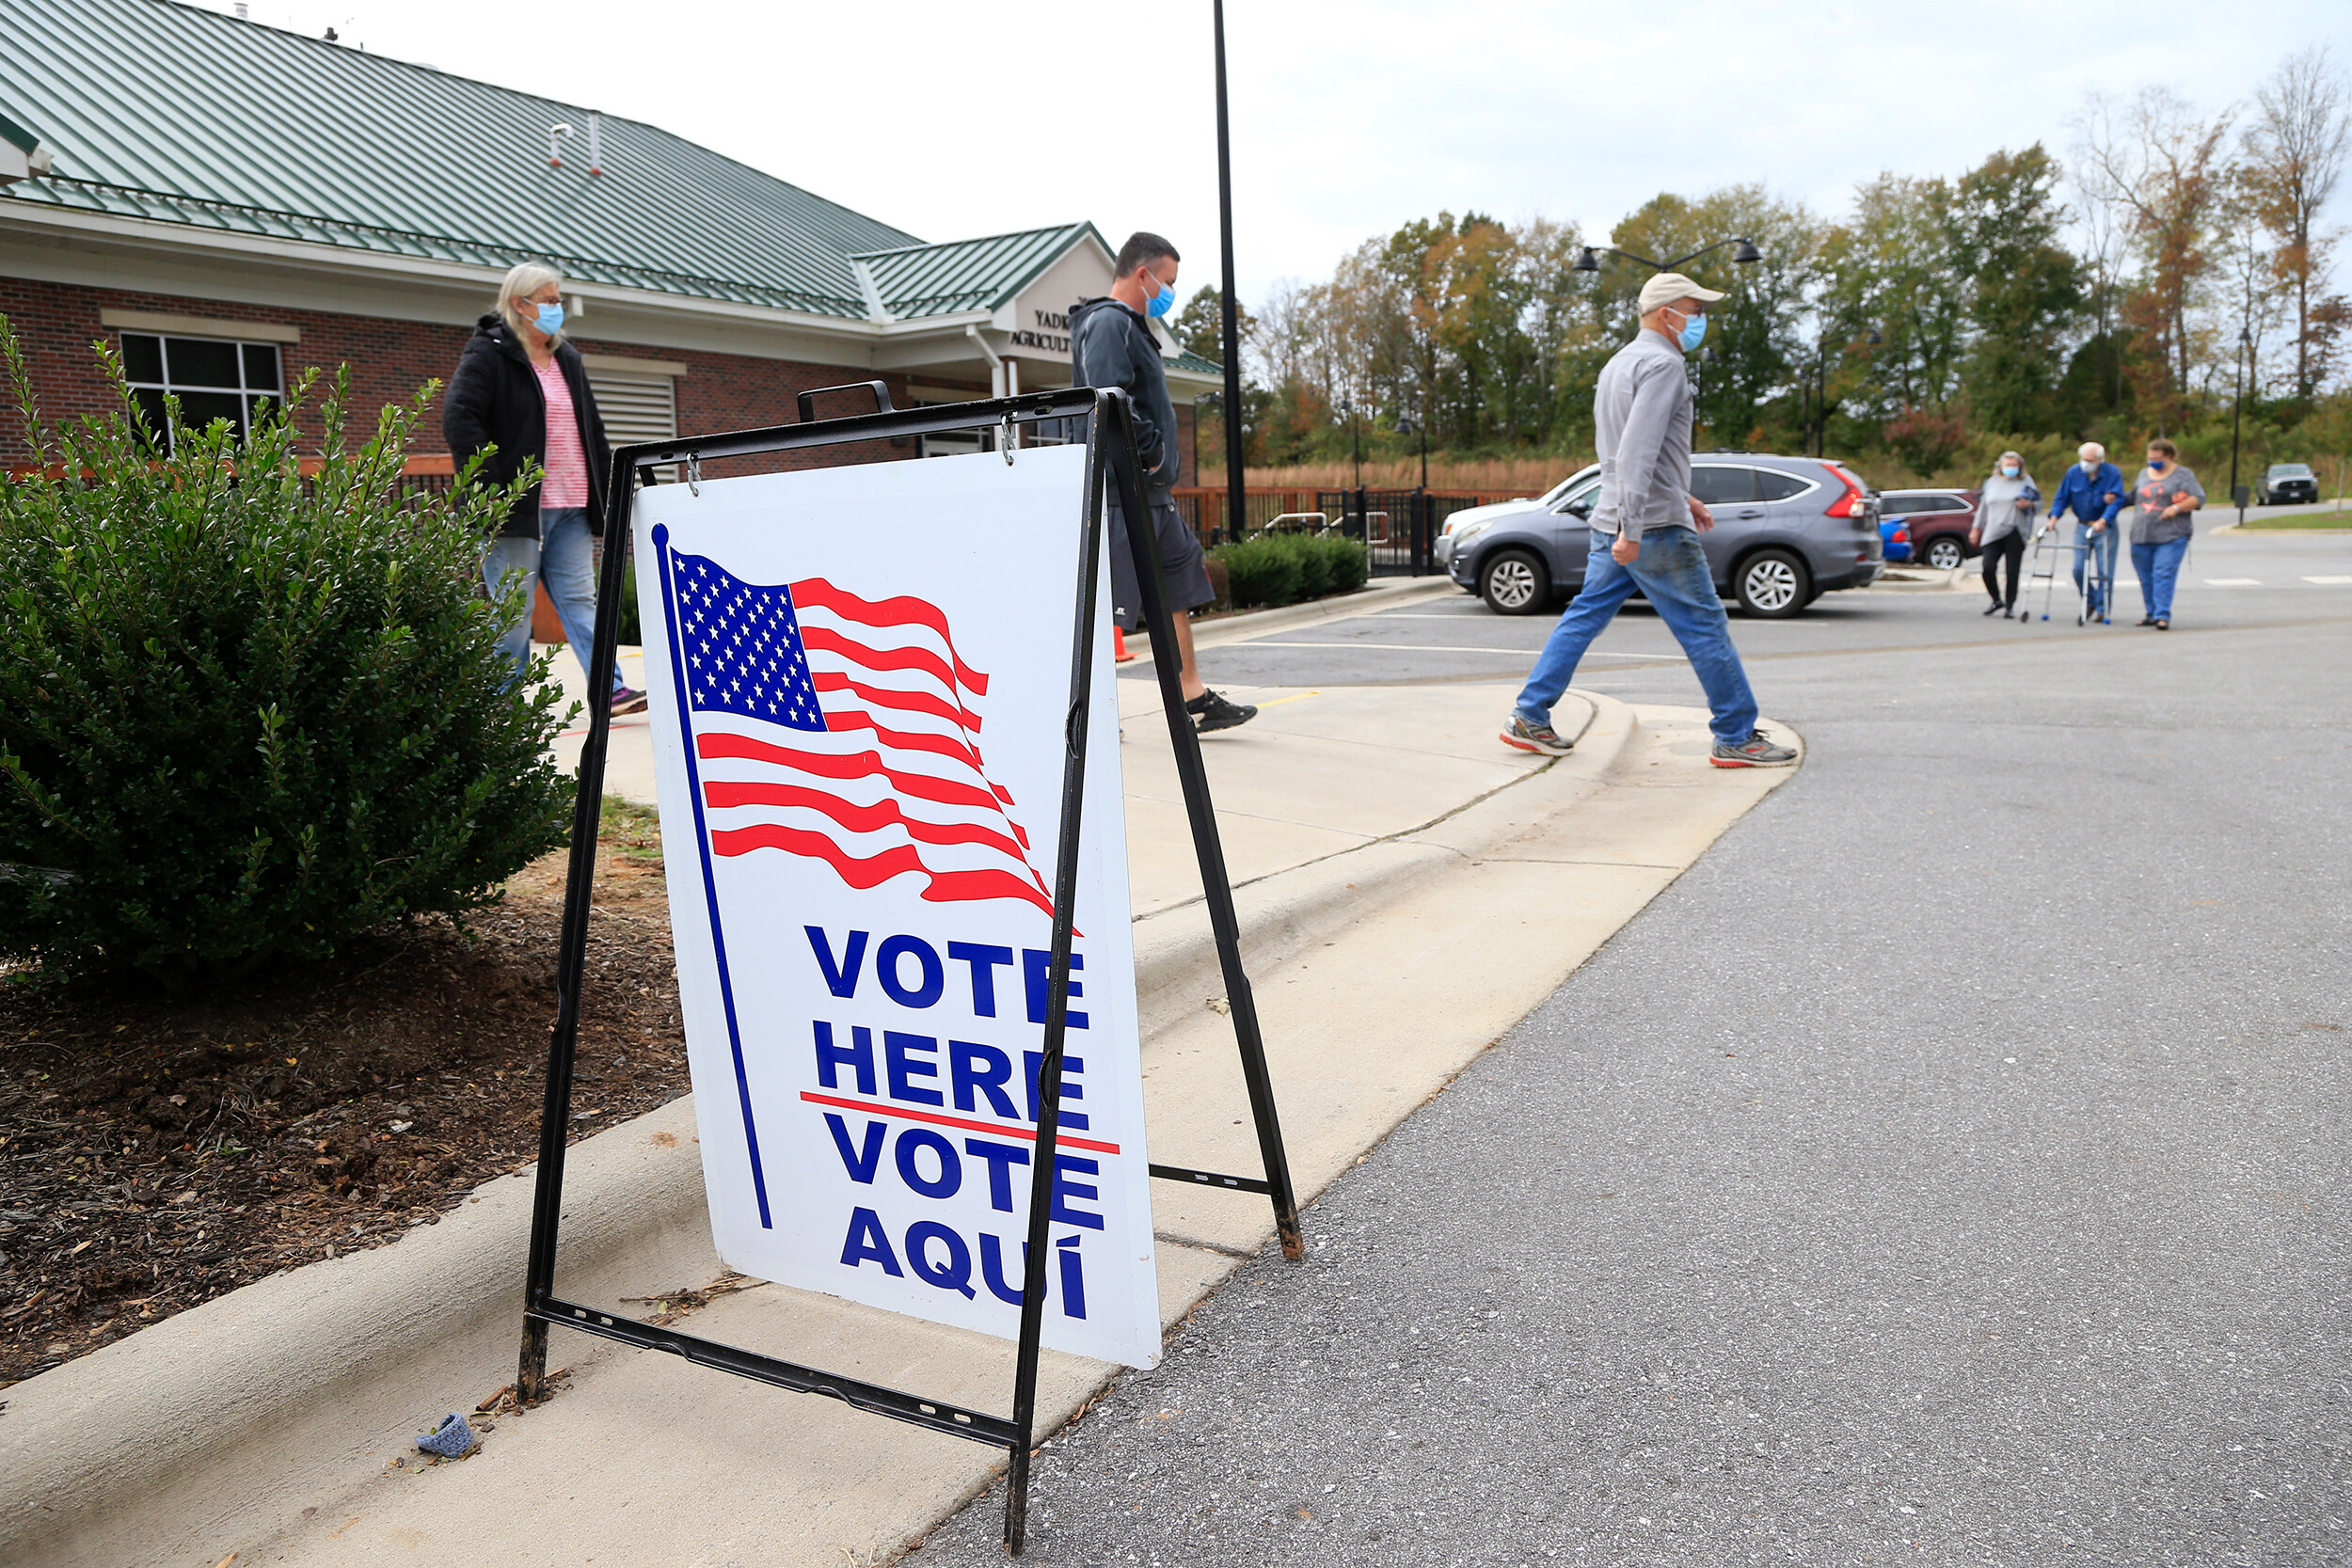 <i>Brian Blanco/Getty Images/.FILE</i><br/>A North Carolina state court panel blocked a voter identification law